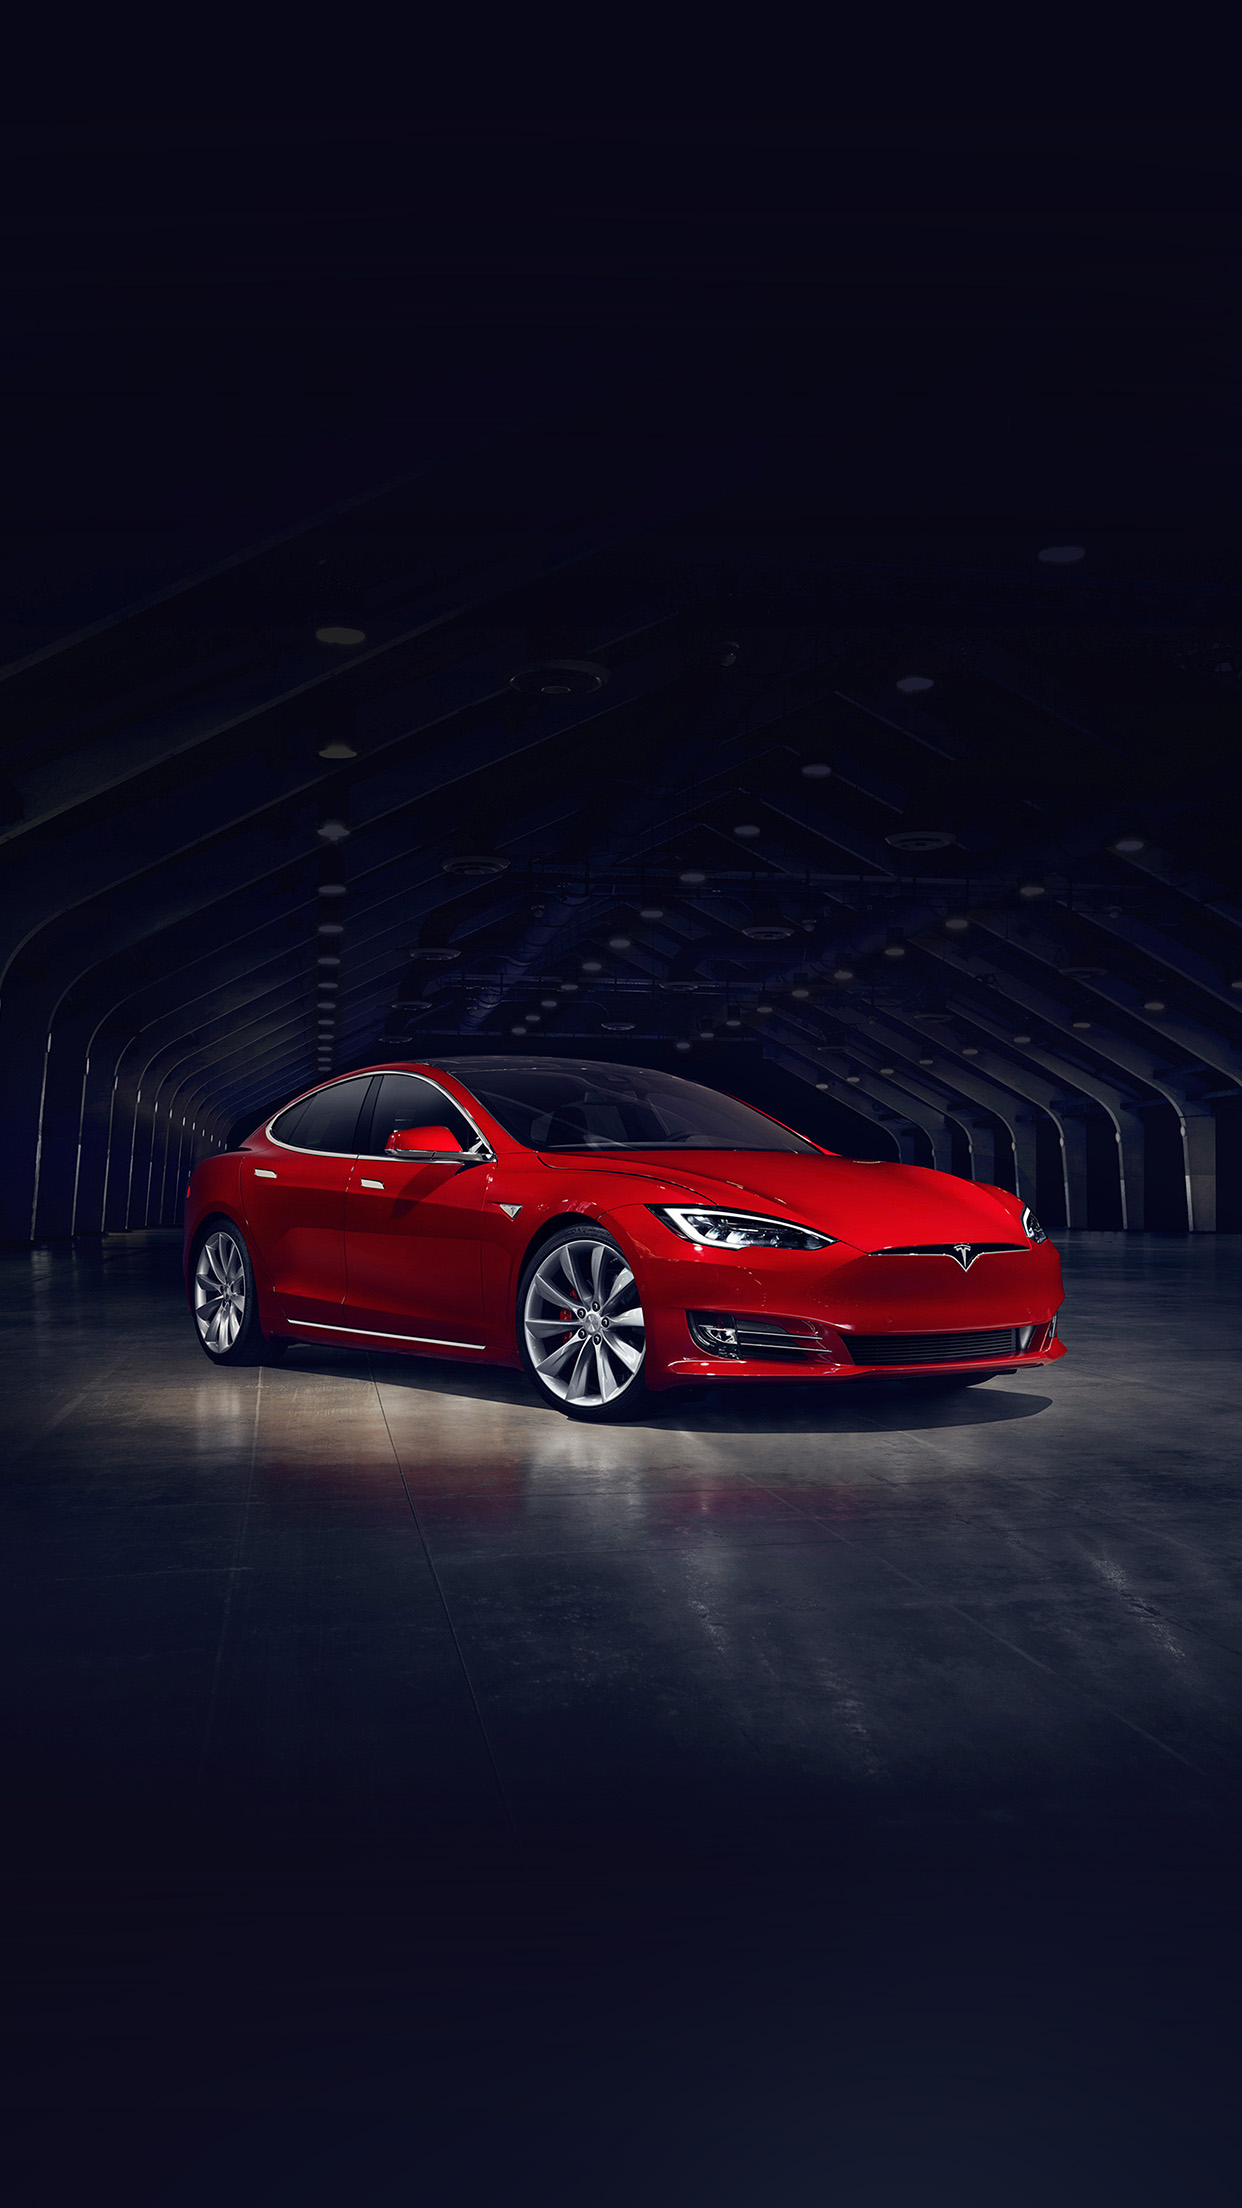 Tesla Model Red Car Android Wallpaper Iphone Tesla Model X 1242x2208 Download Hd Wallpaper Wallpapertip